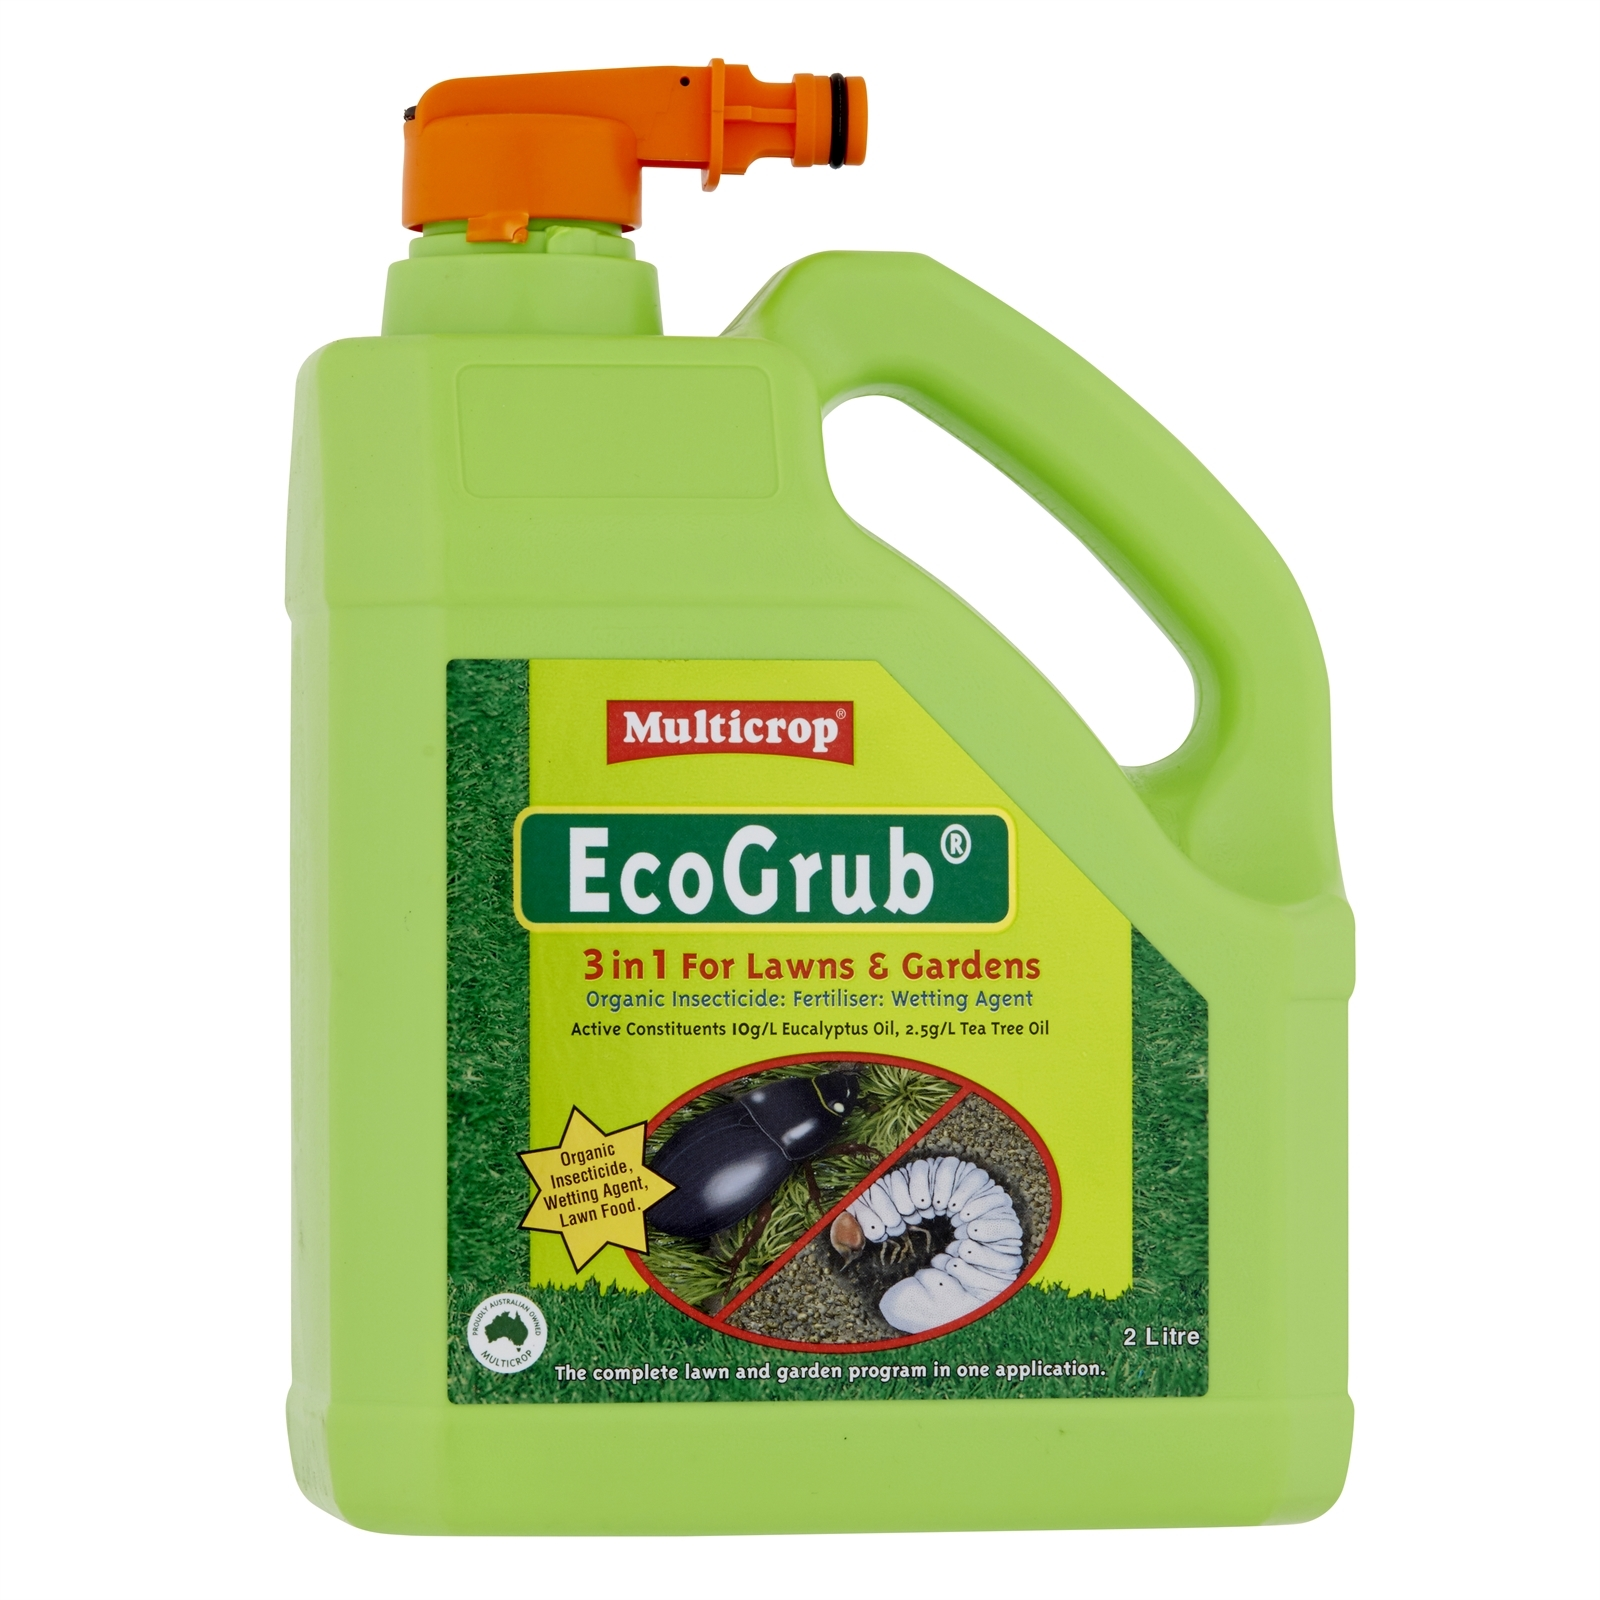 Multicrop 2L EcoGrub 3 In 1 Insecticide